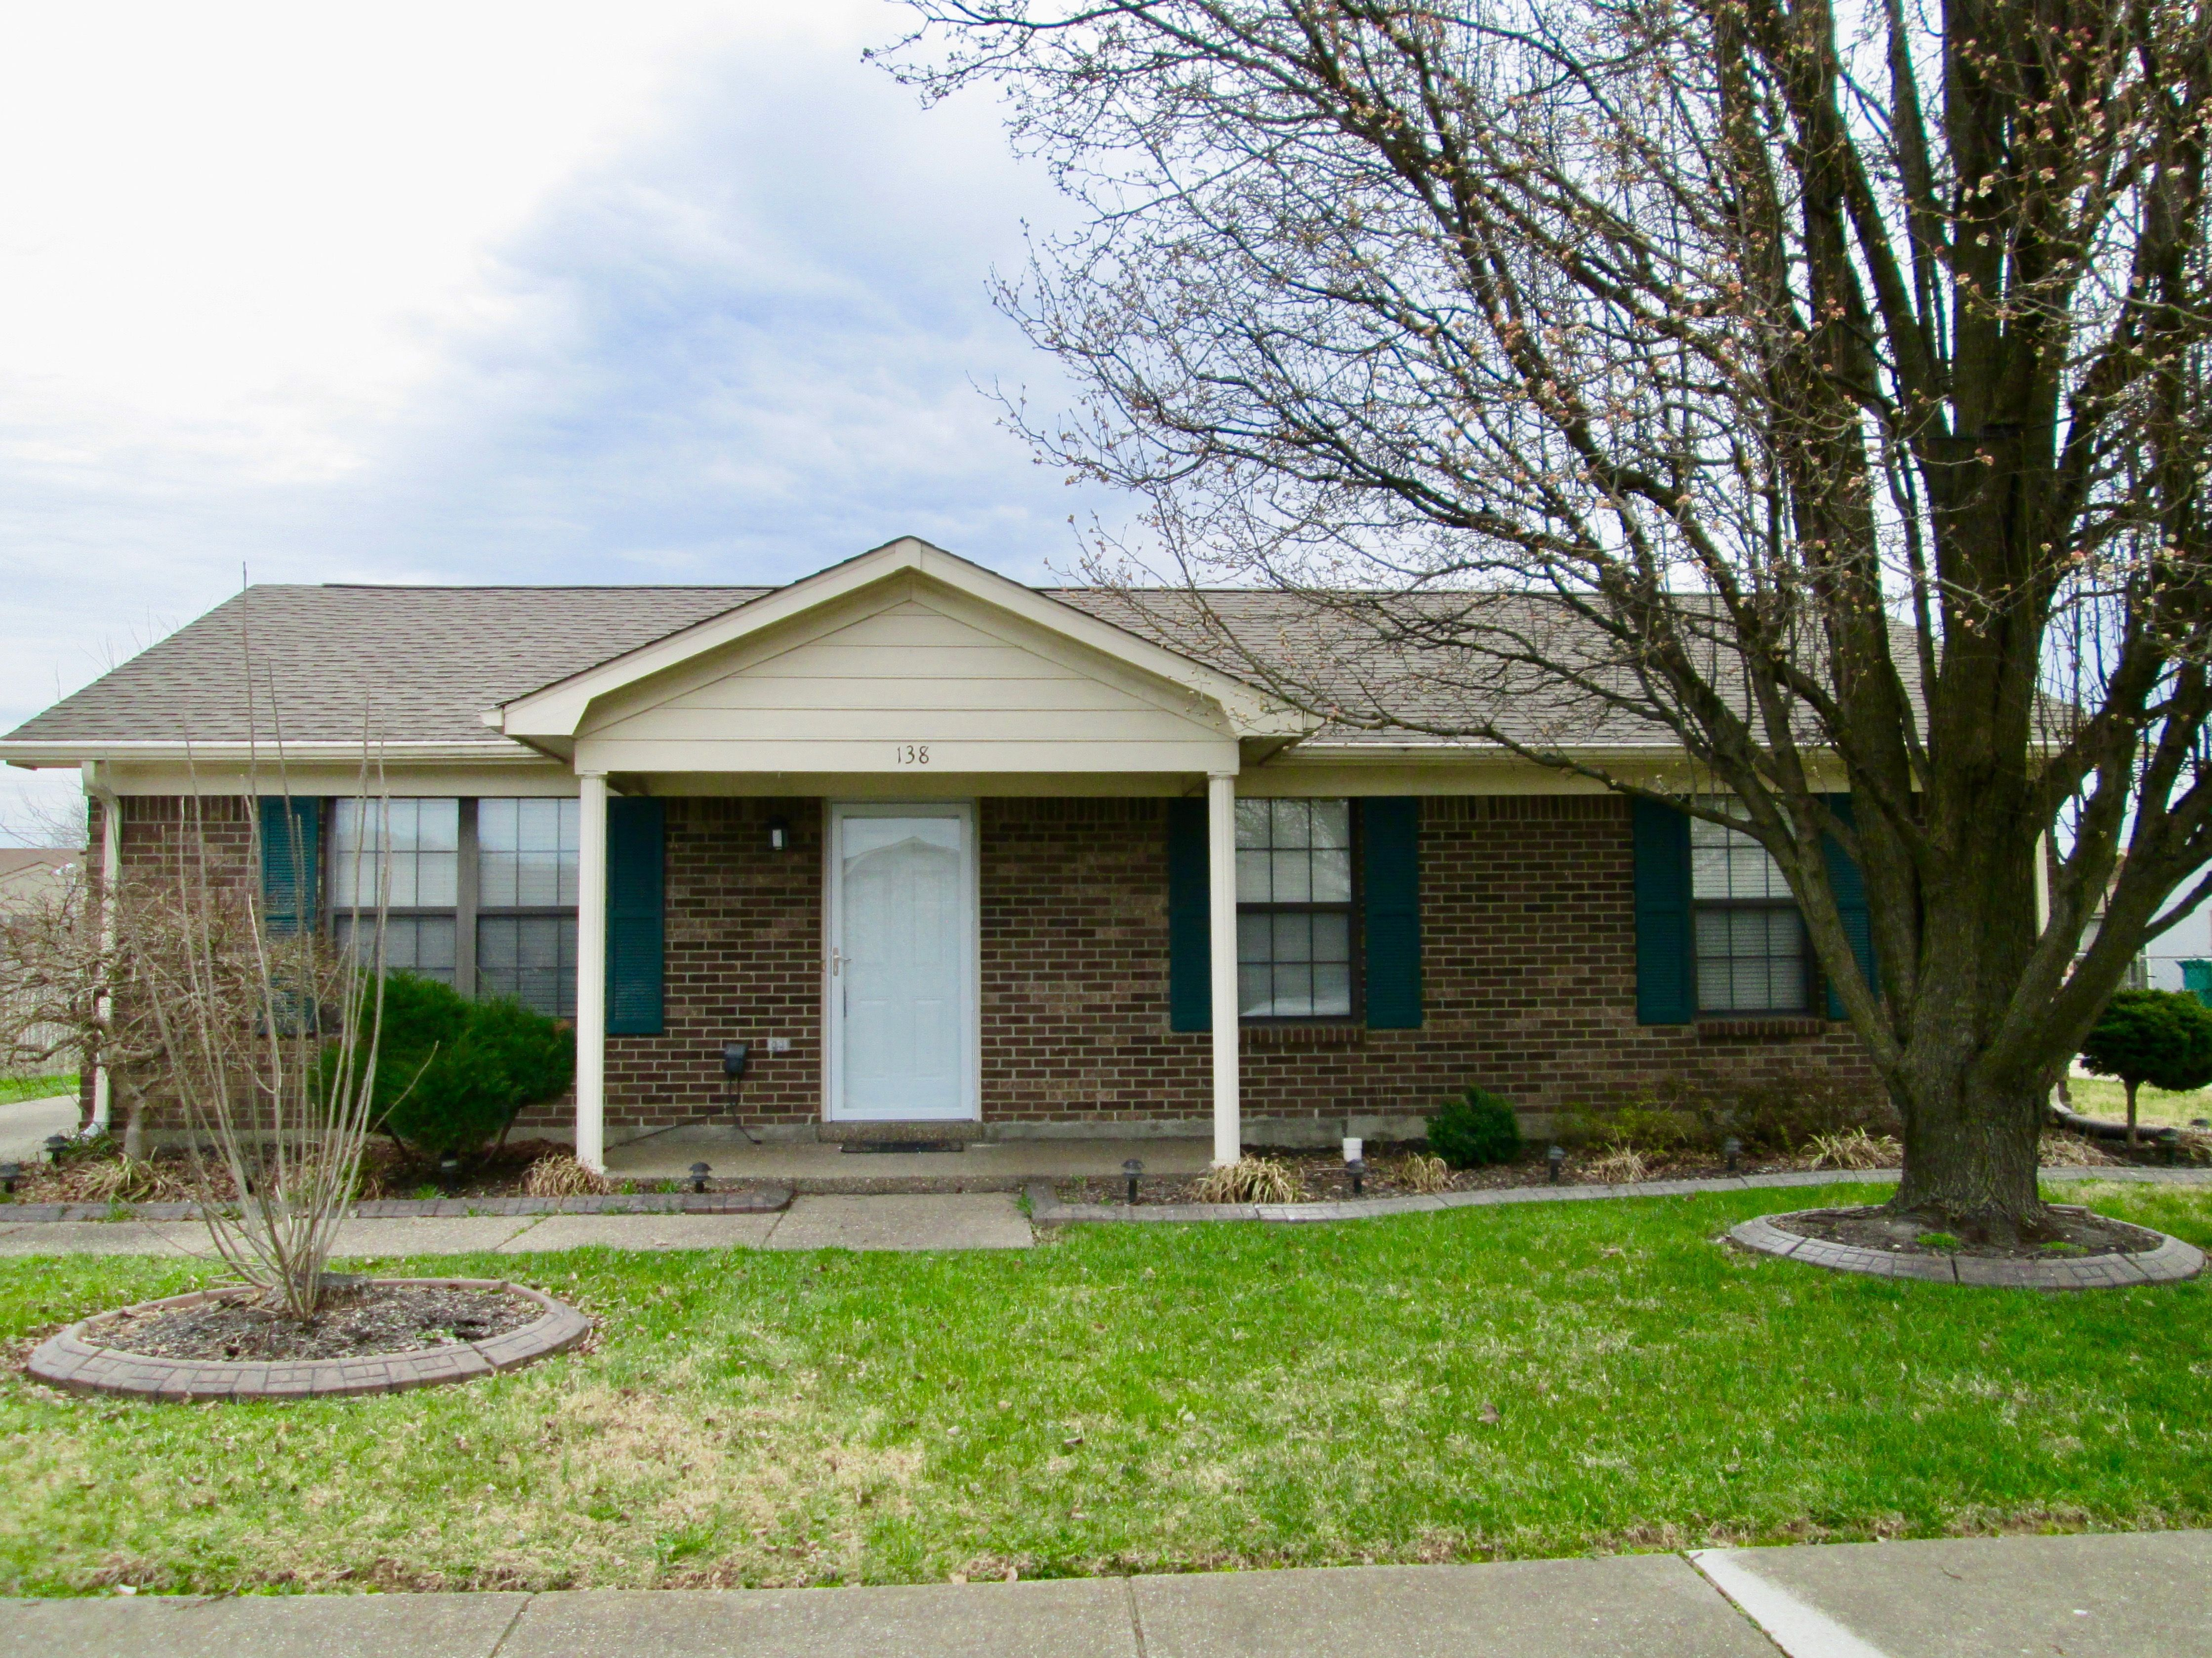 138 Wooded Way Louisville Ky 40229. Call Casey Thompson